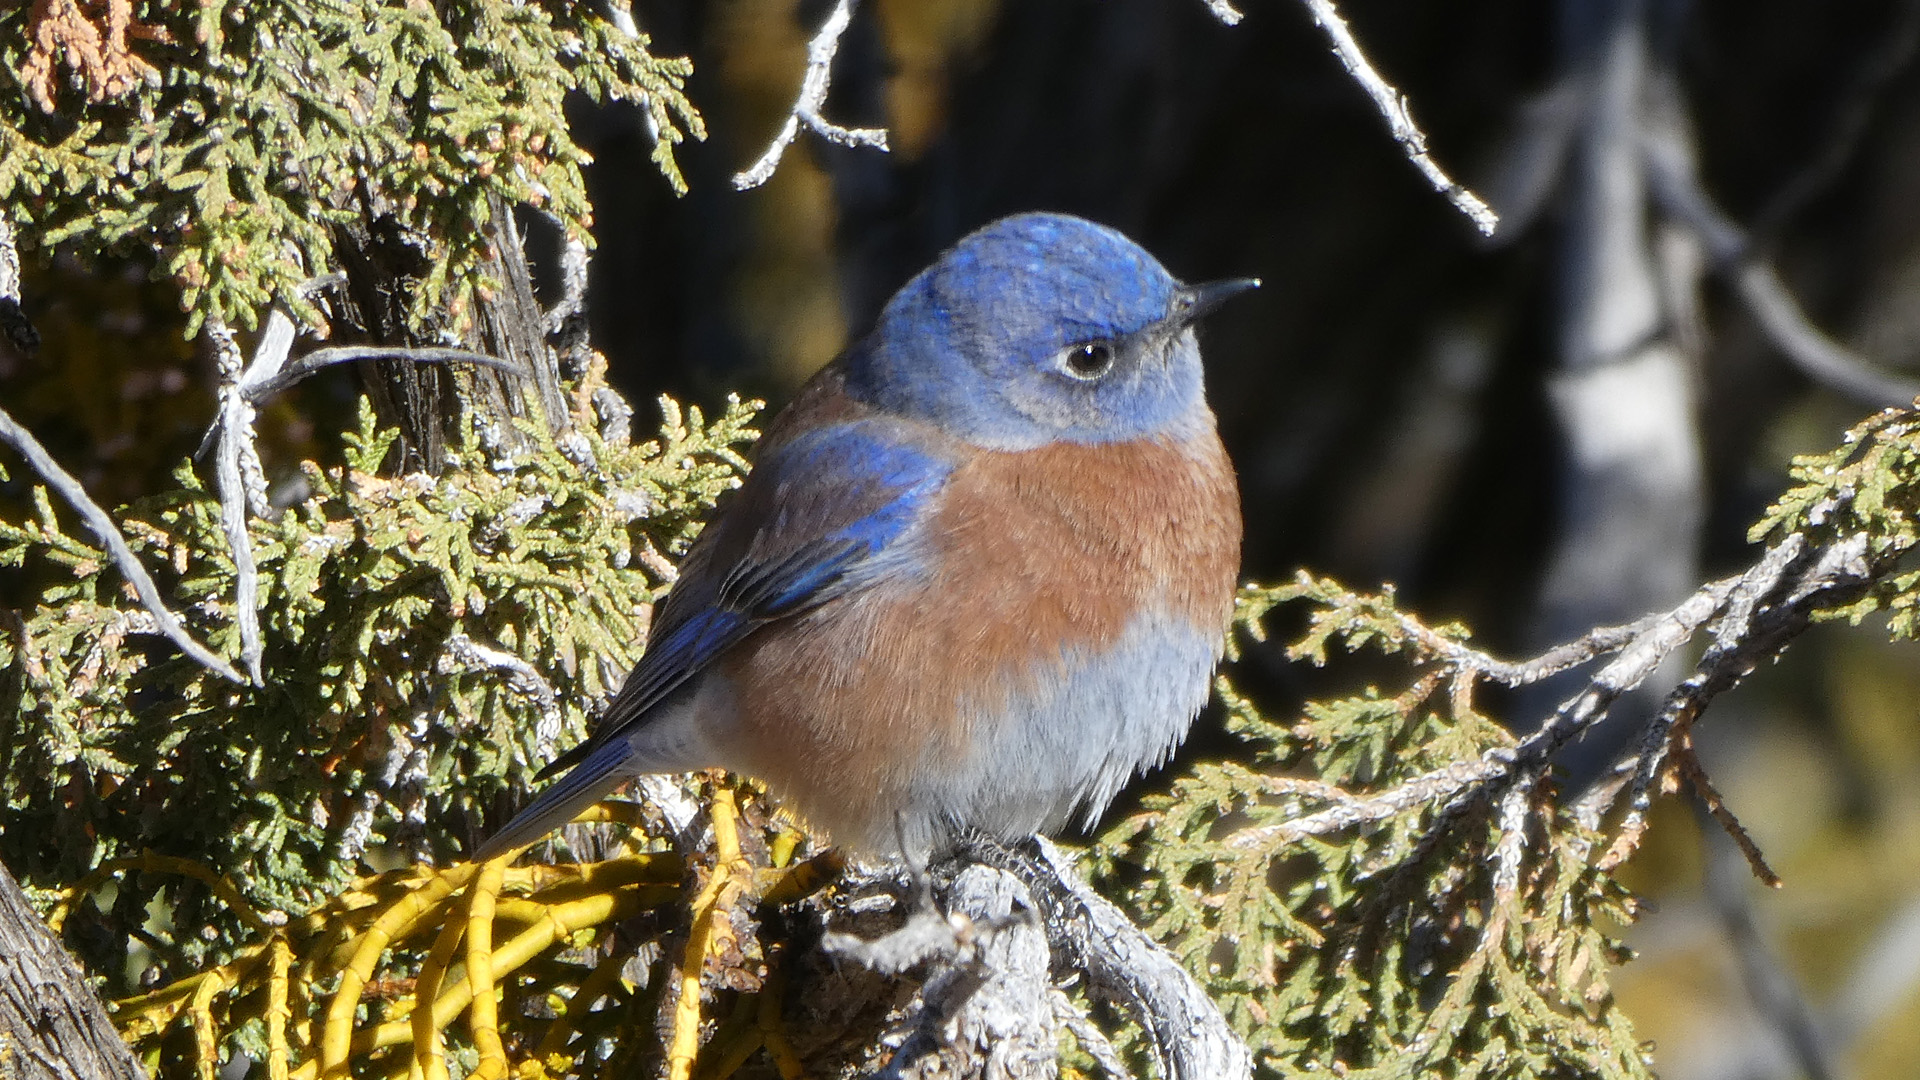 Male, Sandia Mountains west foothills, December 2020